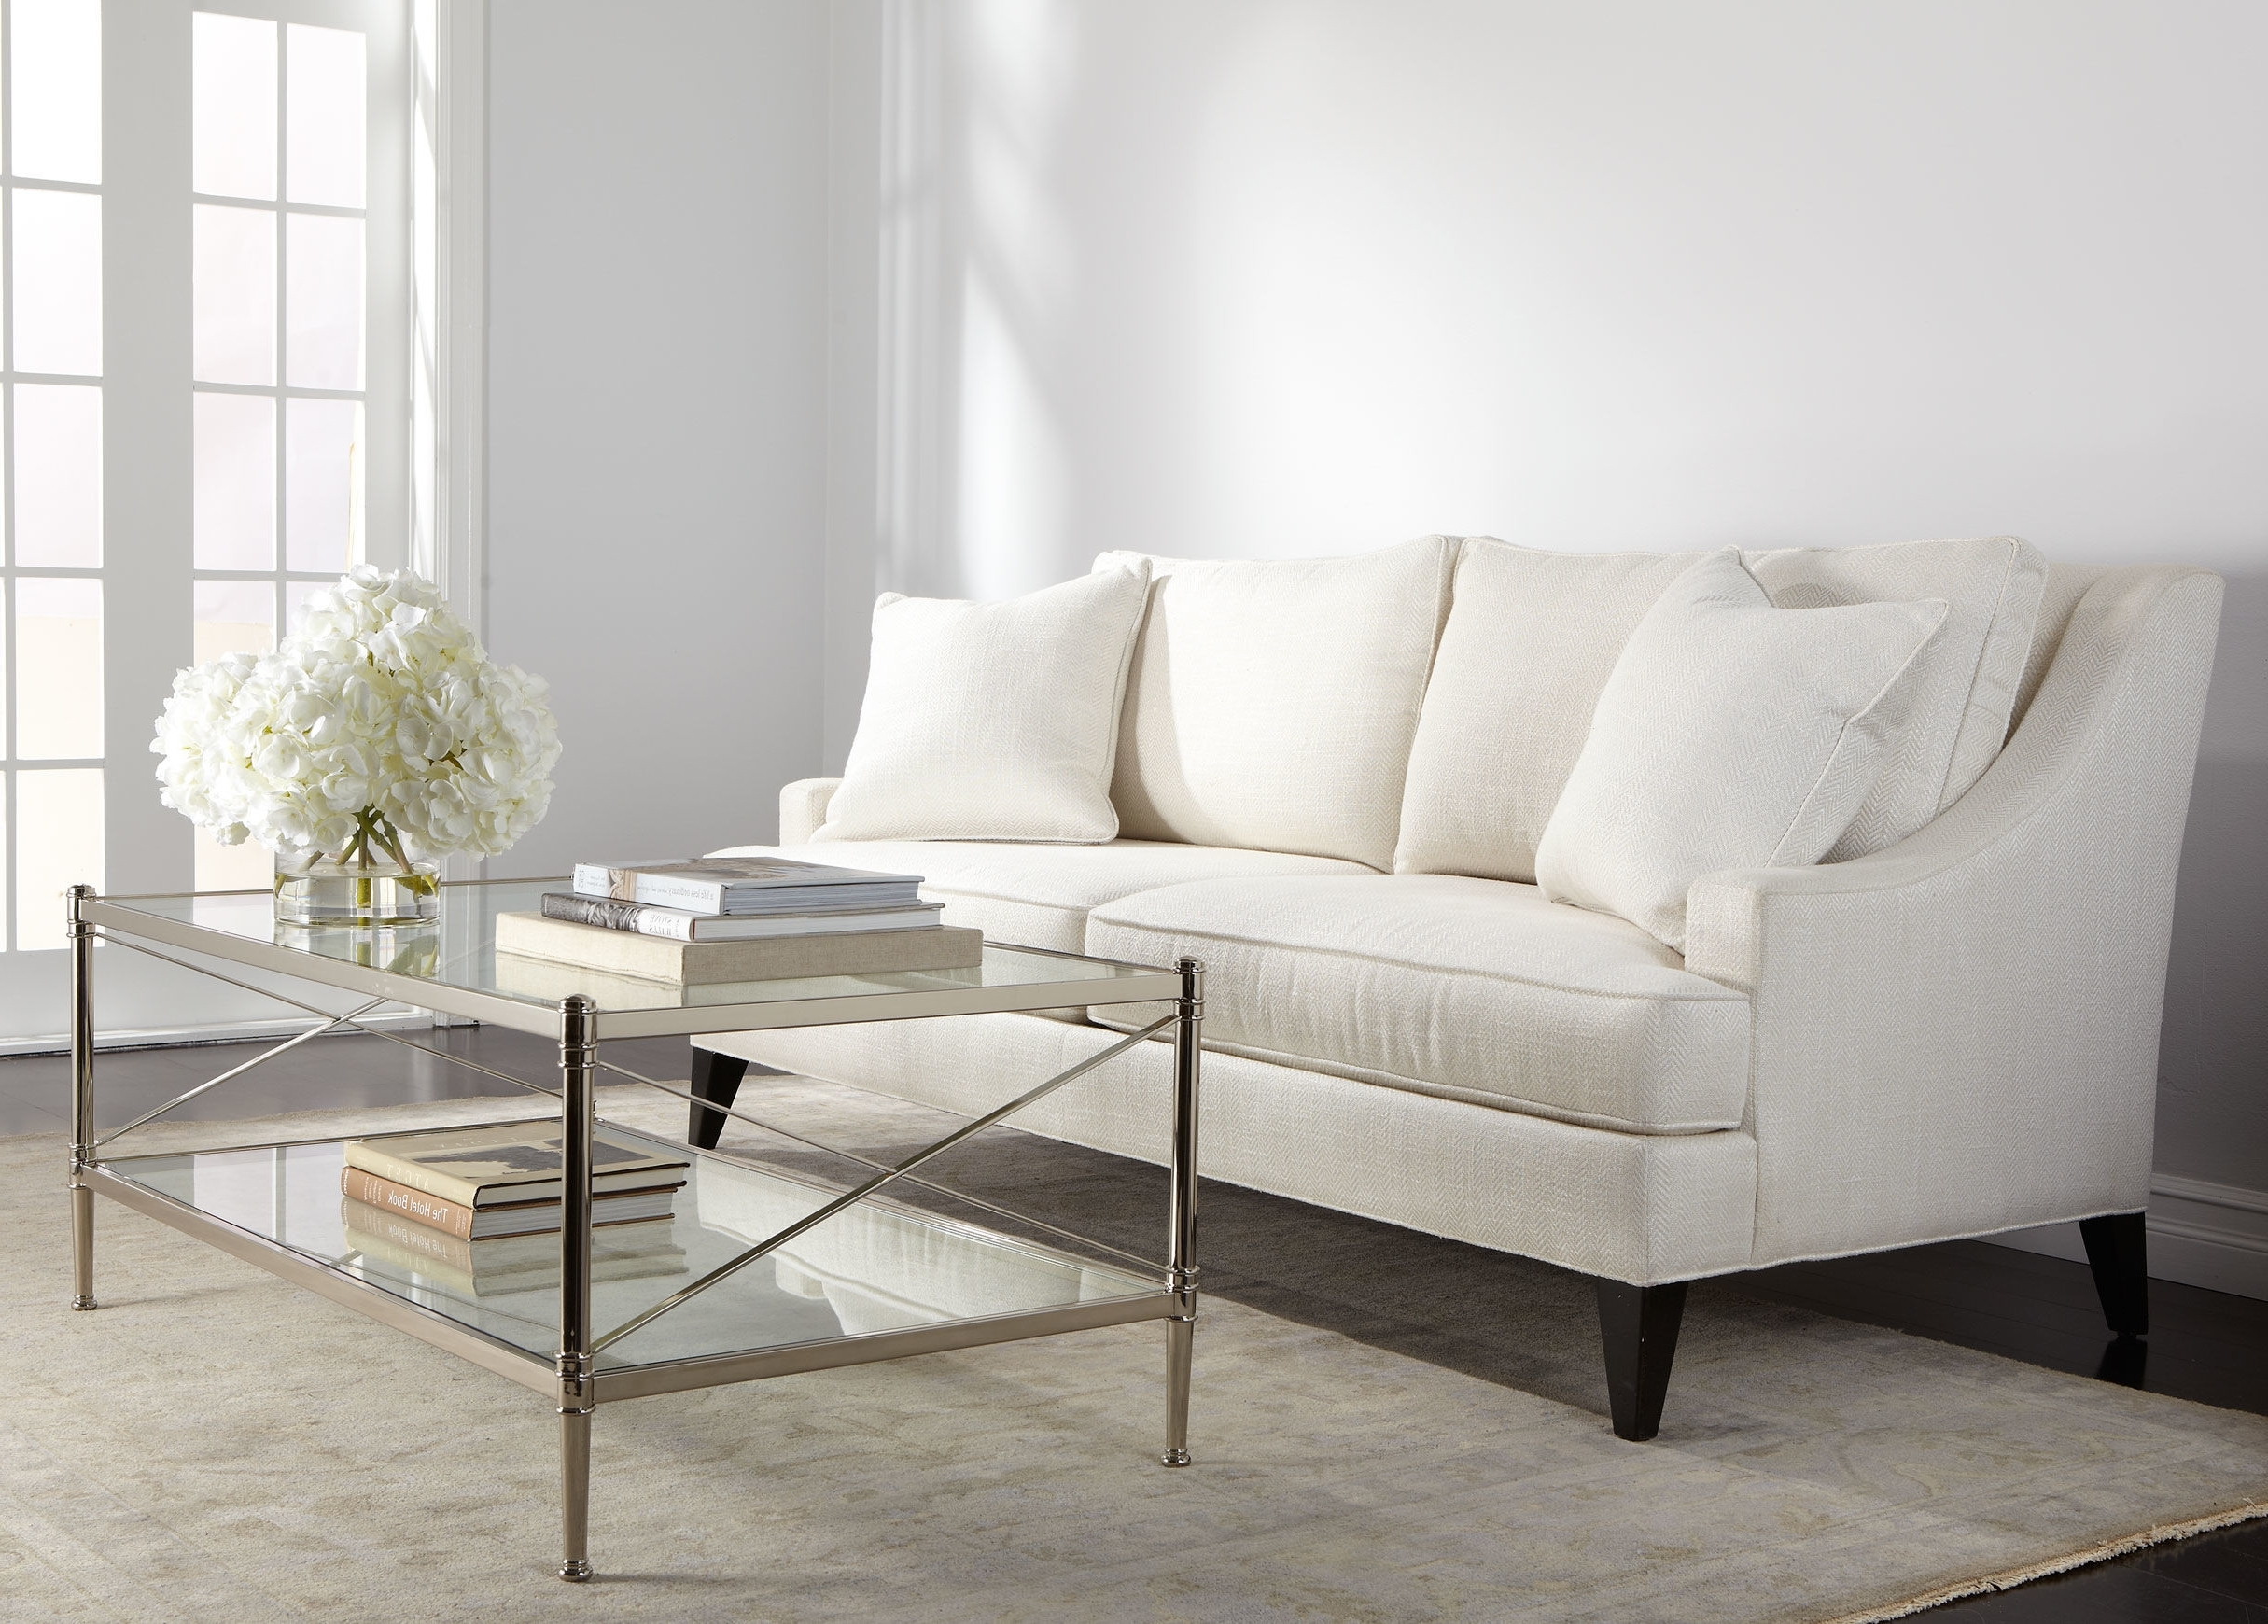 Down Filled Sofas Intended For Favorite Furniture : Ethan Allen Down Filled Sofa Elegant Best Ethan Allen (View 5 of 20)